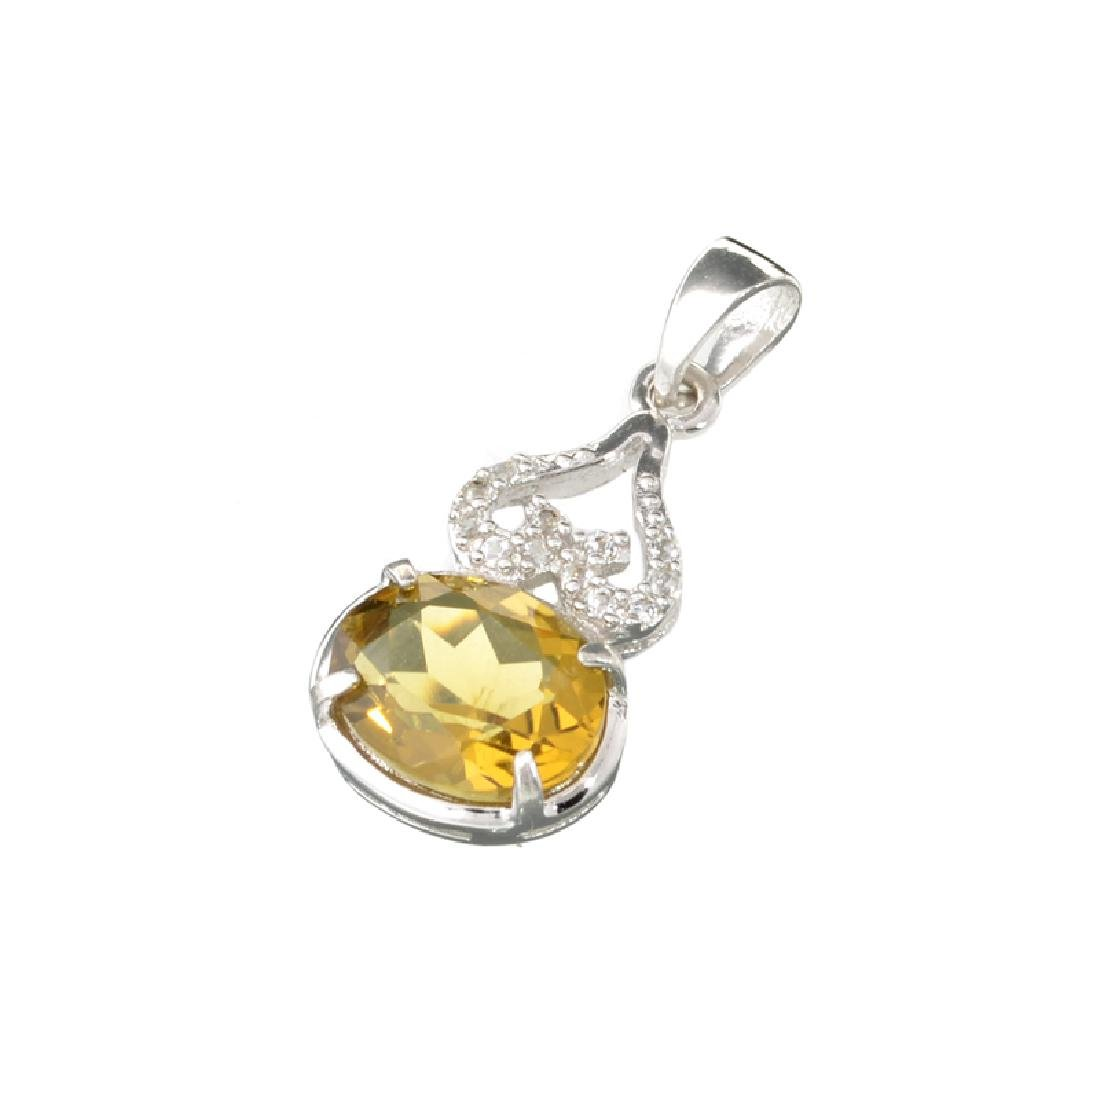 APP: 0.4k Fine Jewelry 2.00CT Oval Cut Citrine And